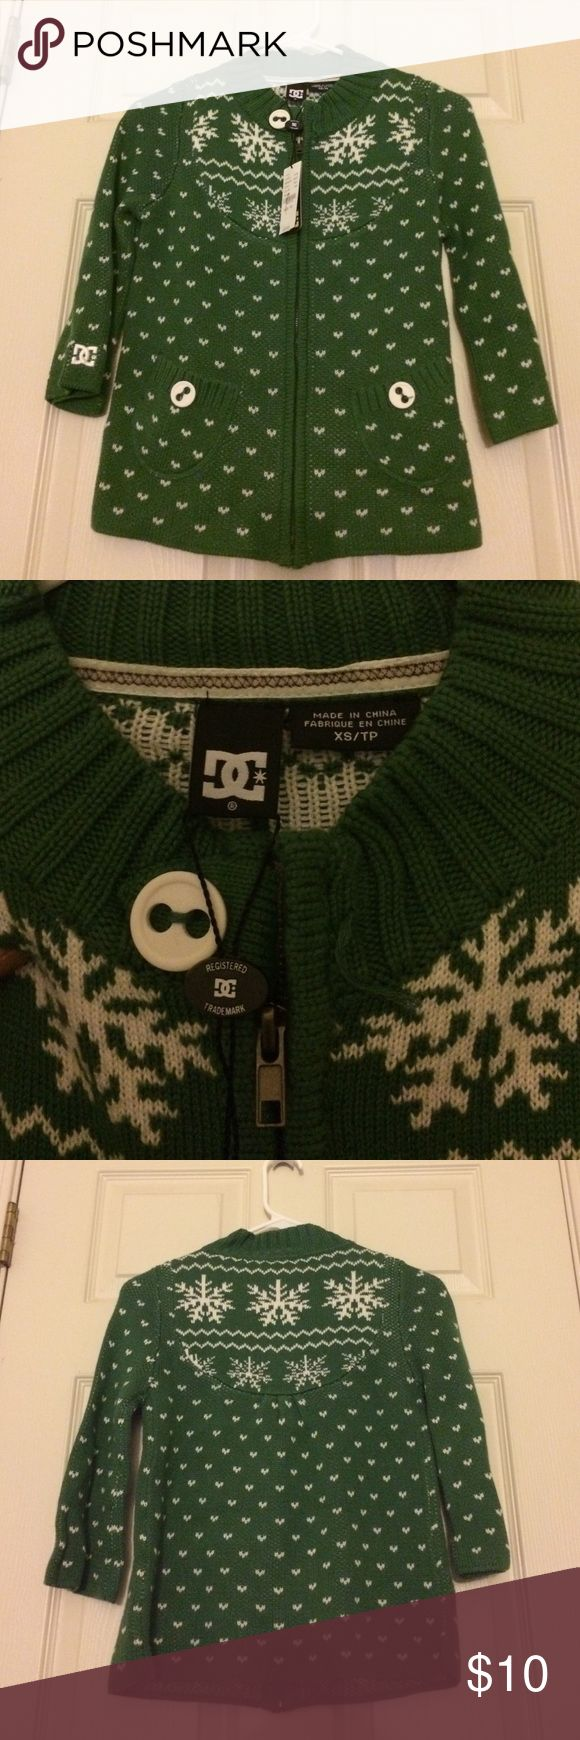 DC Christmas Sweater. I bought this Christmas zip up sweater for an ugly sweater party. There was a button originally missing so it was on sale. Two pockets and 3/4 sleeve. DC Sweaters Cardigans